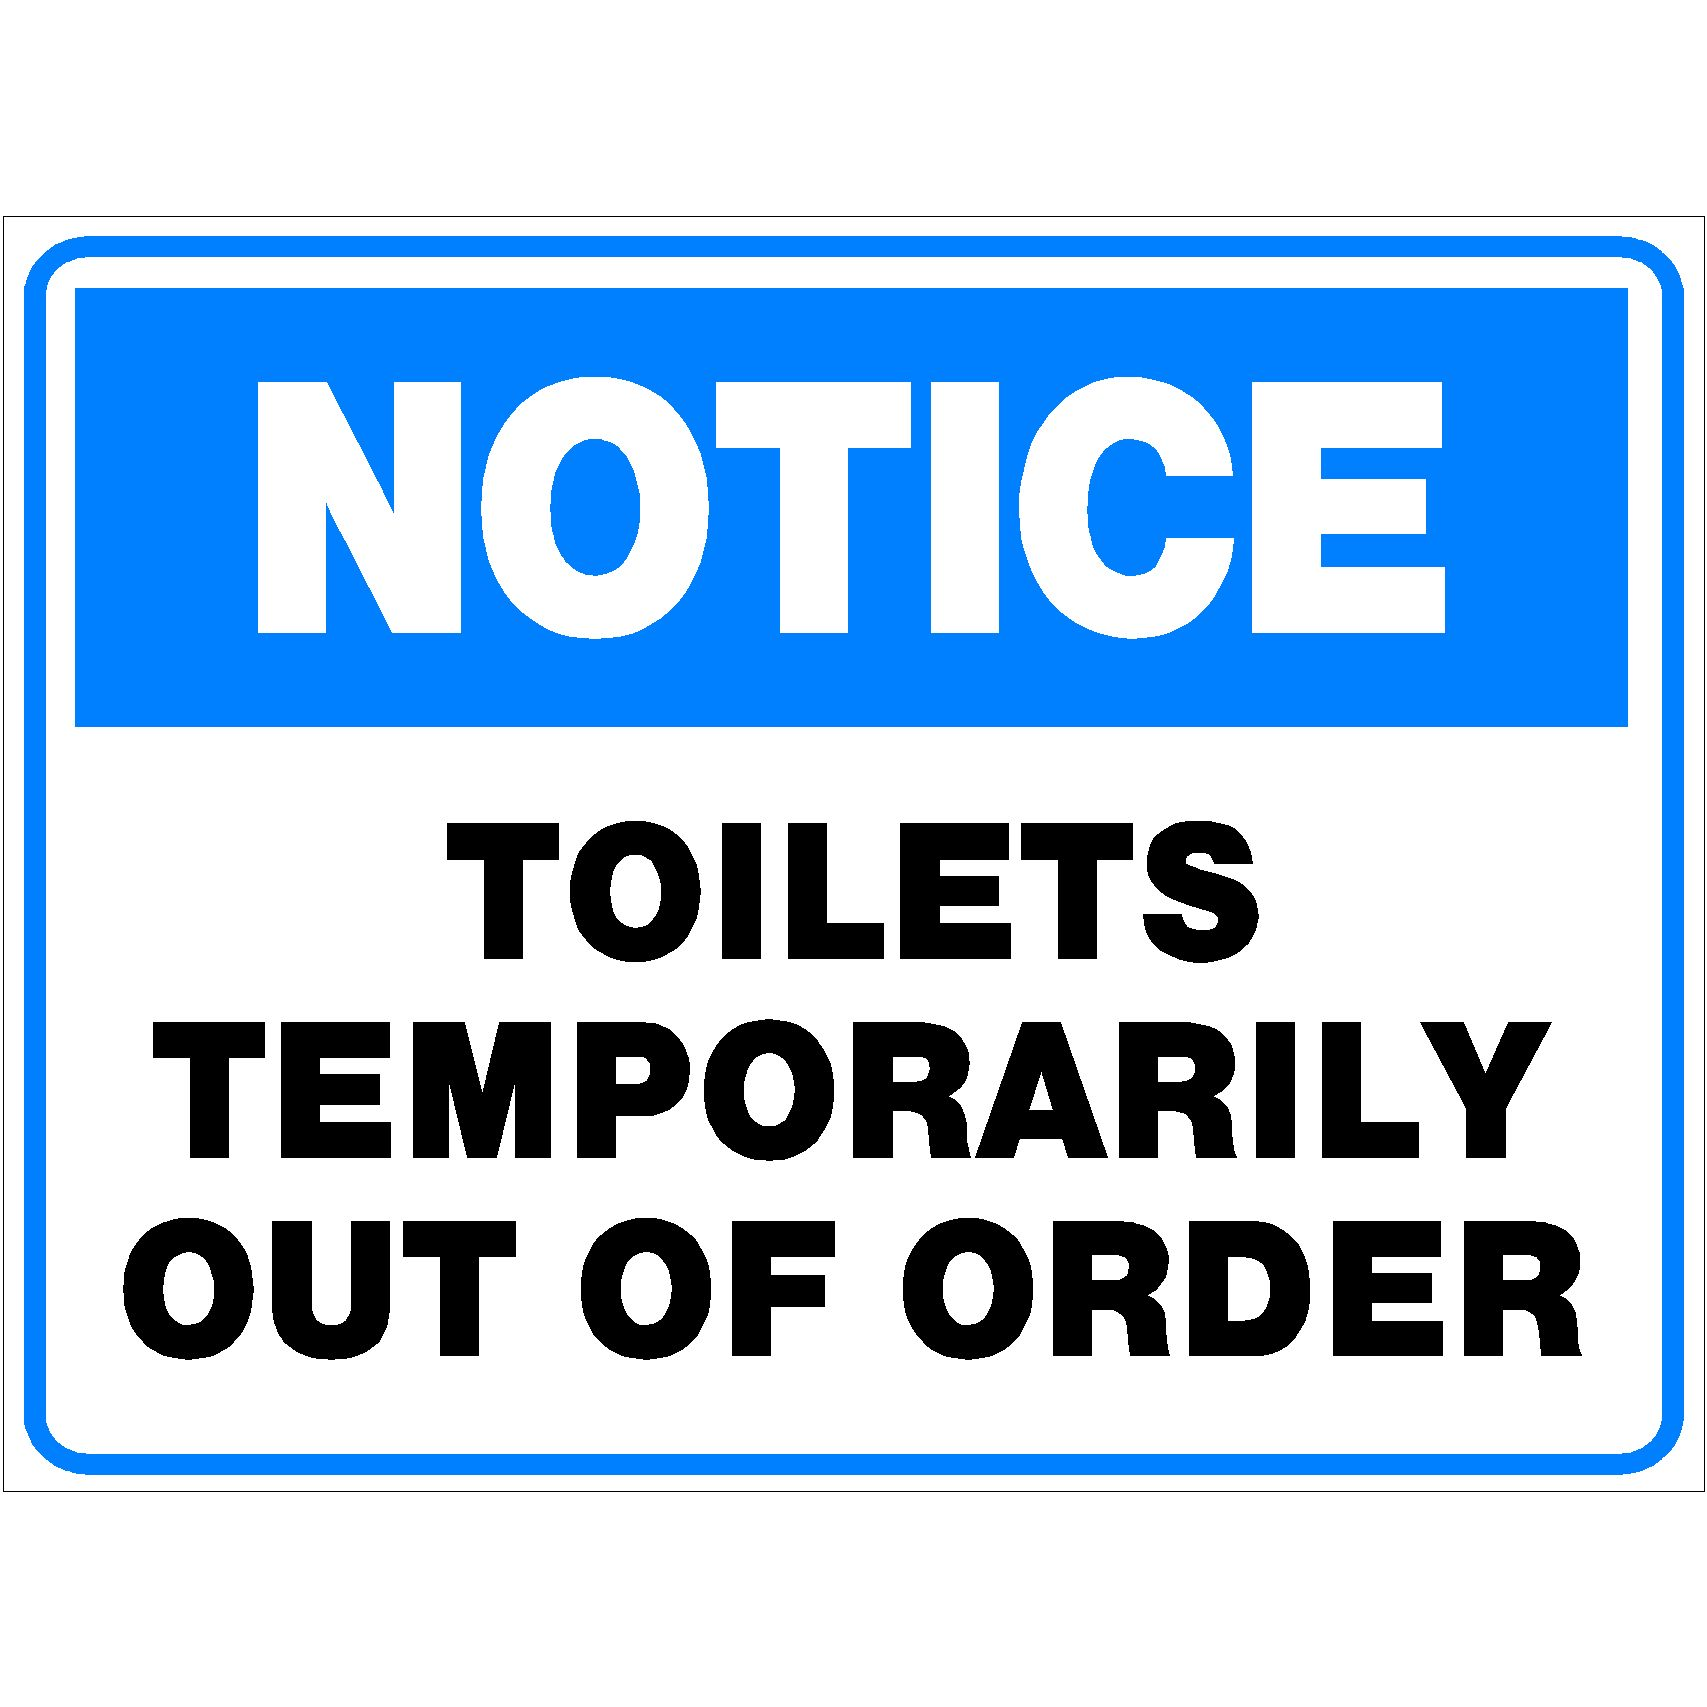 Notice Toilets Temporarily Out Of Order